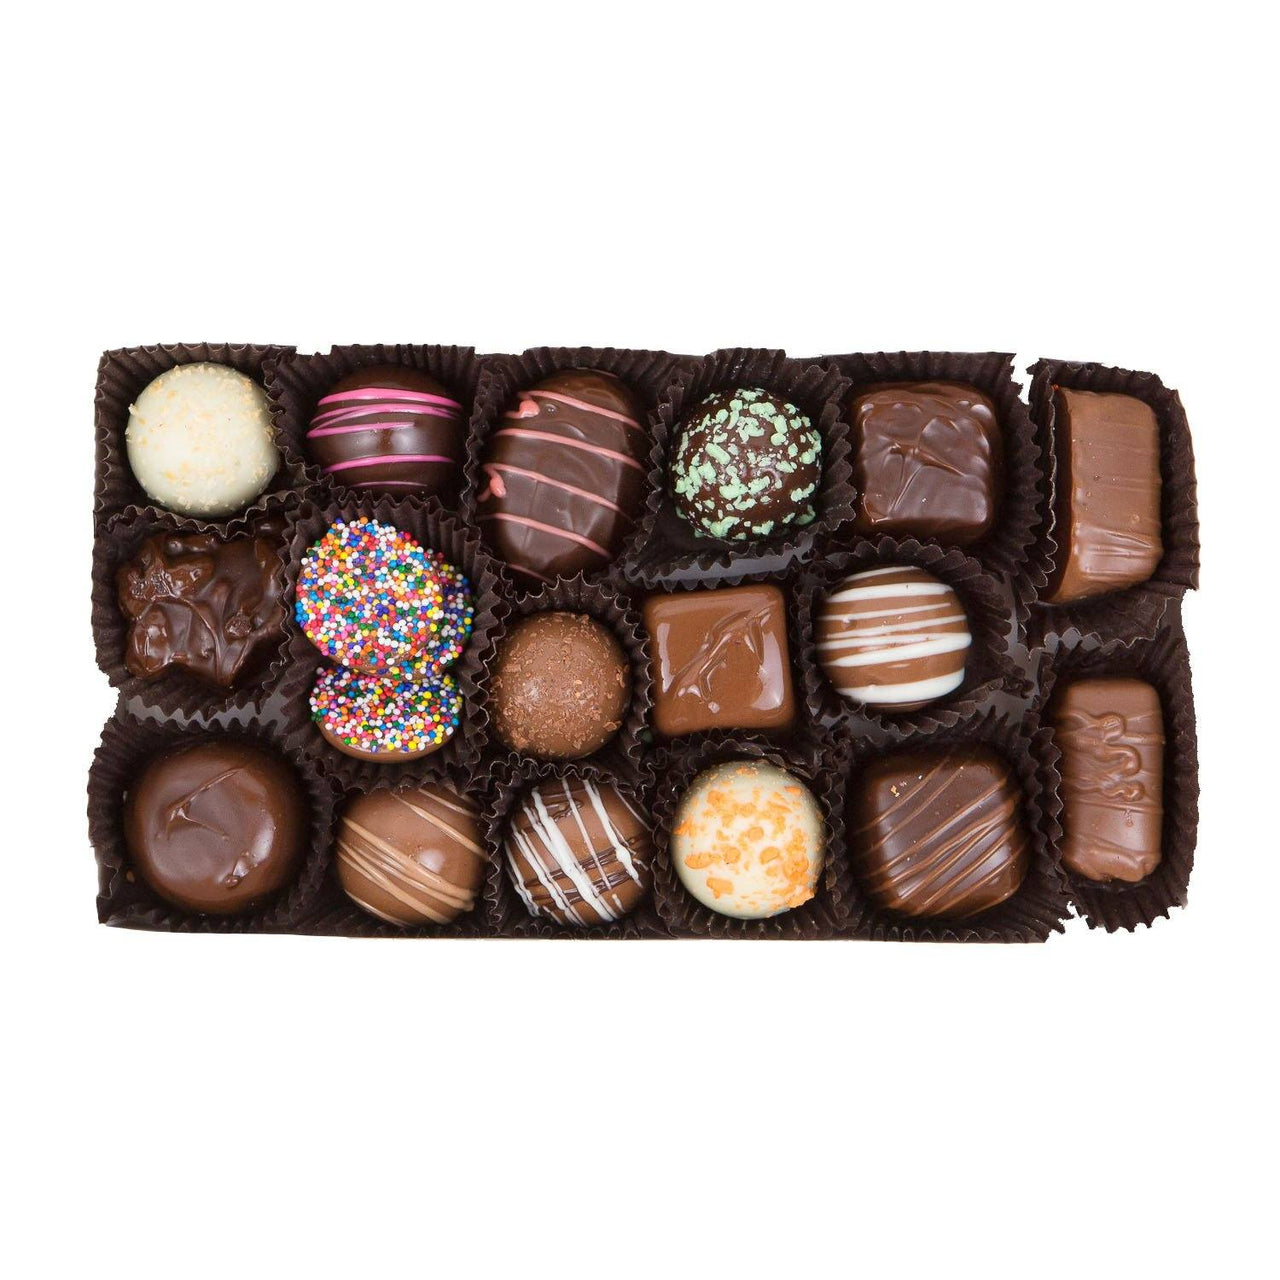 Gifts for New Moms - Assorted Chocolate Gift Box - Jackie's Chocolate (1487137832995)